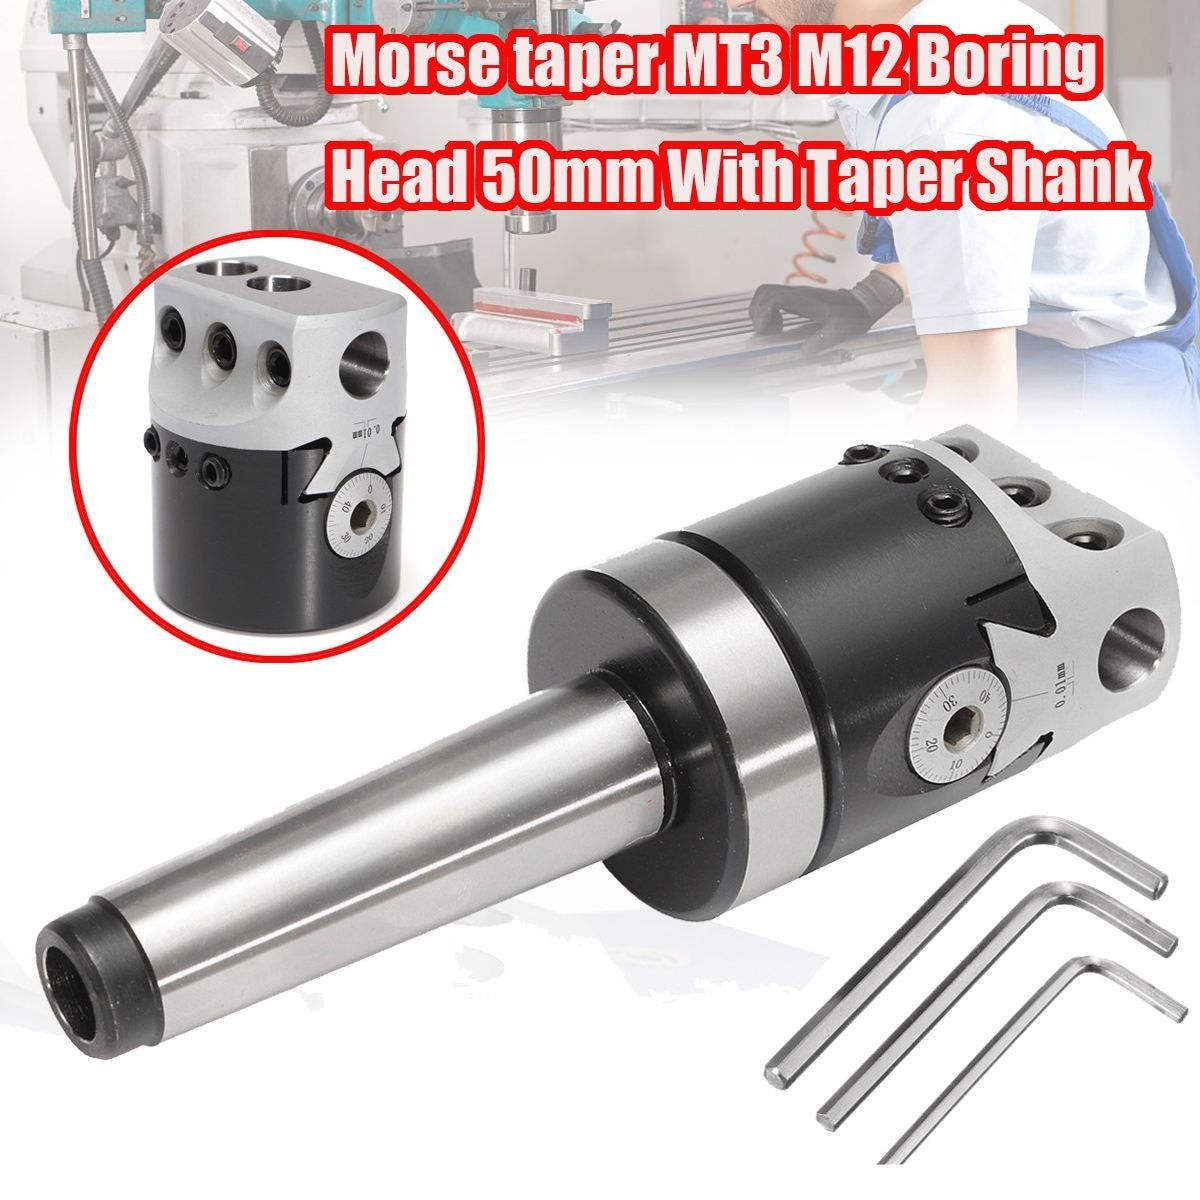 1Set 50mm MT3-M12 Universal Usage Boring Head With Morse Taper Shank For Lathe Milling Tool